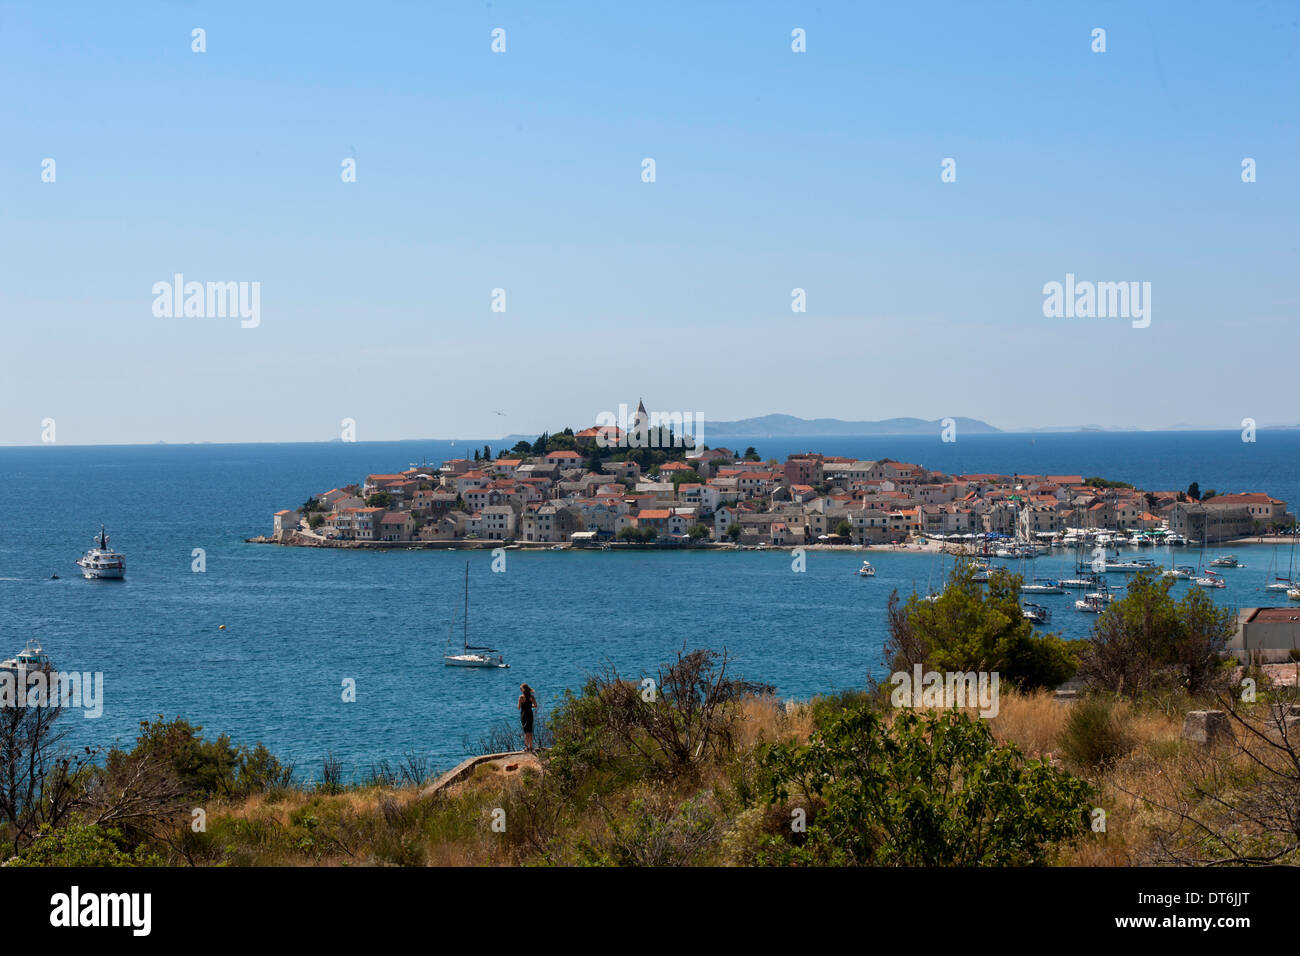 View of island near Dubrovnic Stock Photo